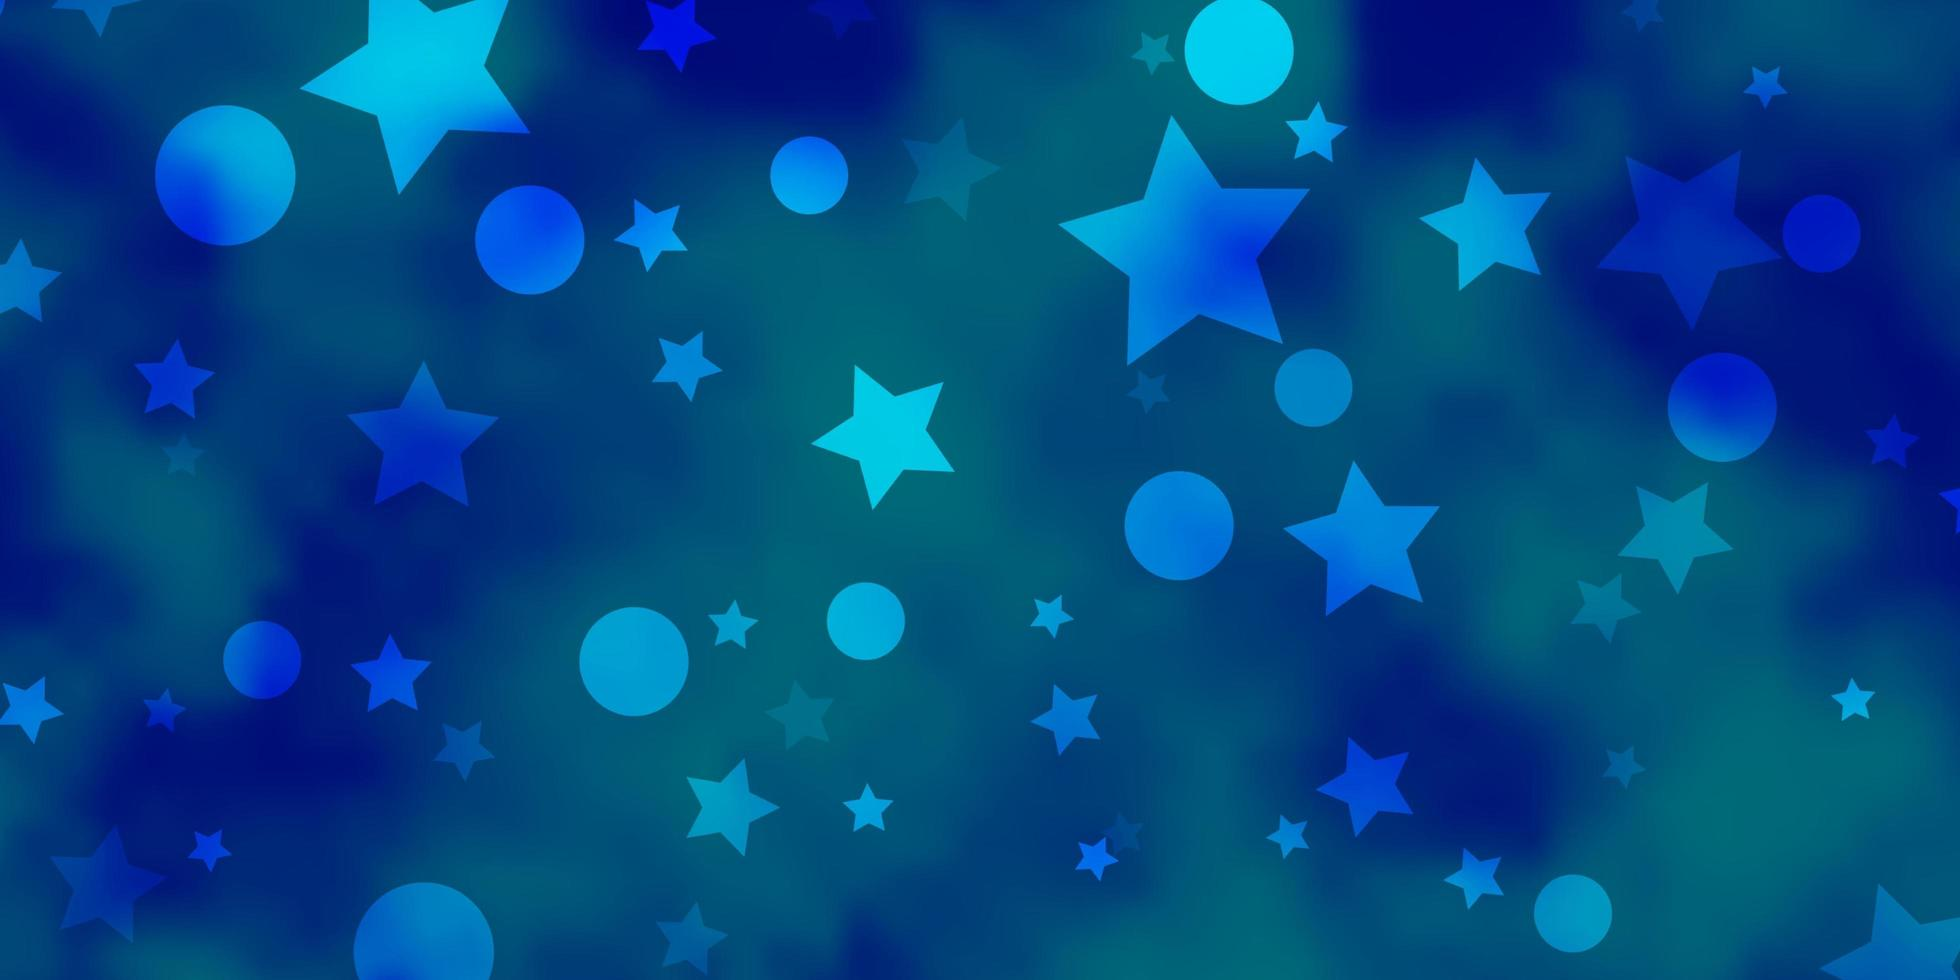 Blue pattern with circles, stars. vector